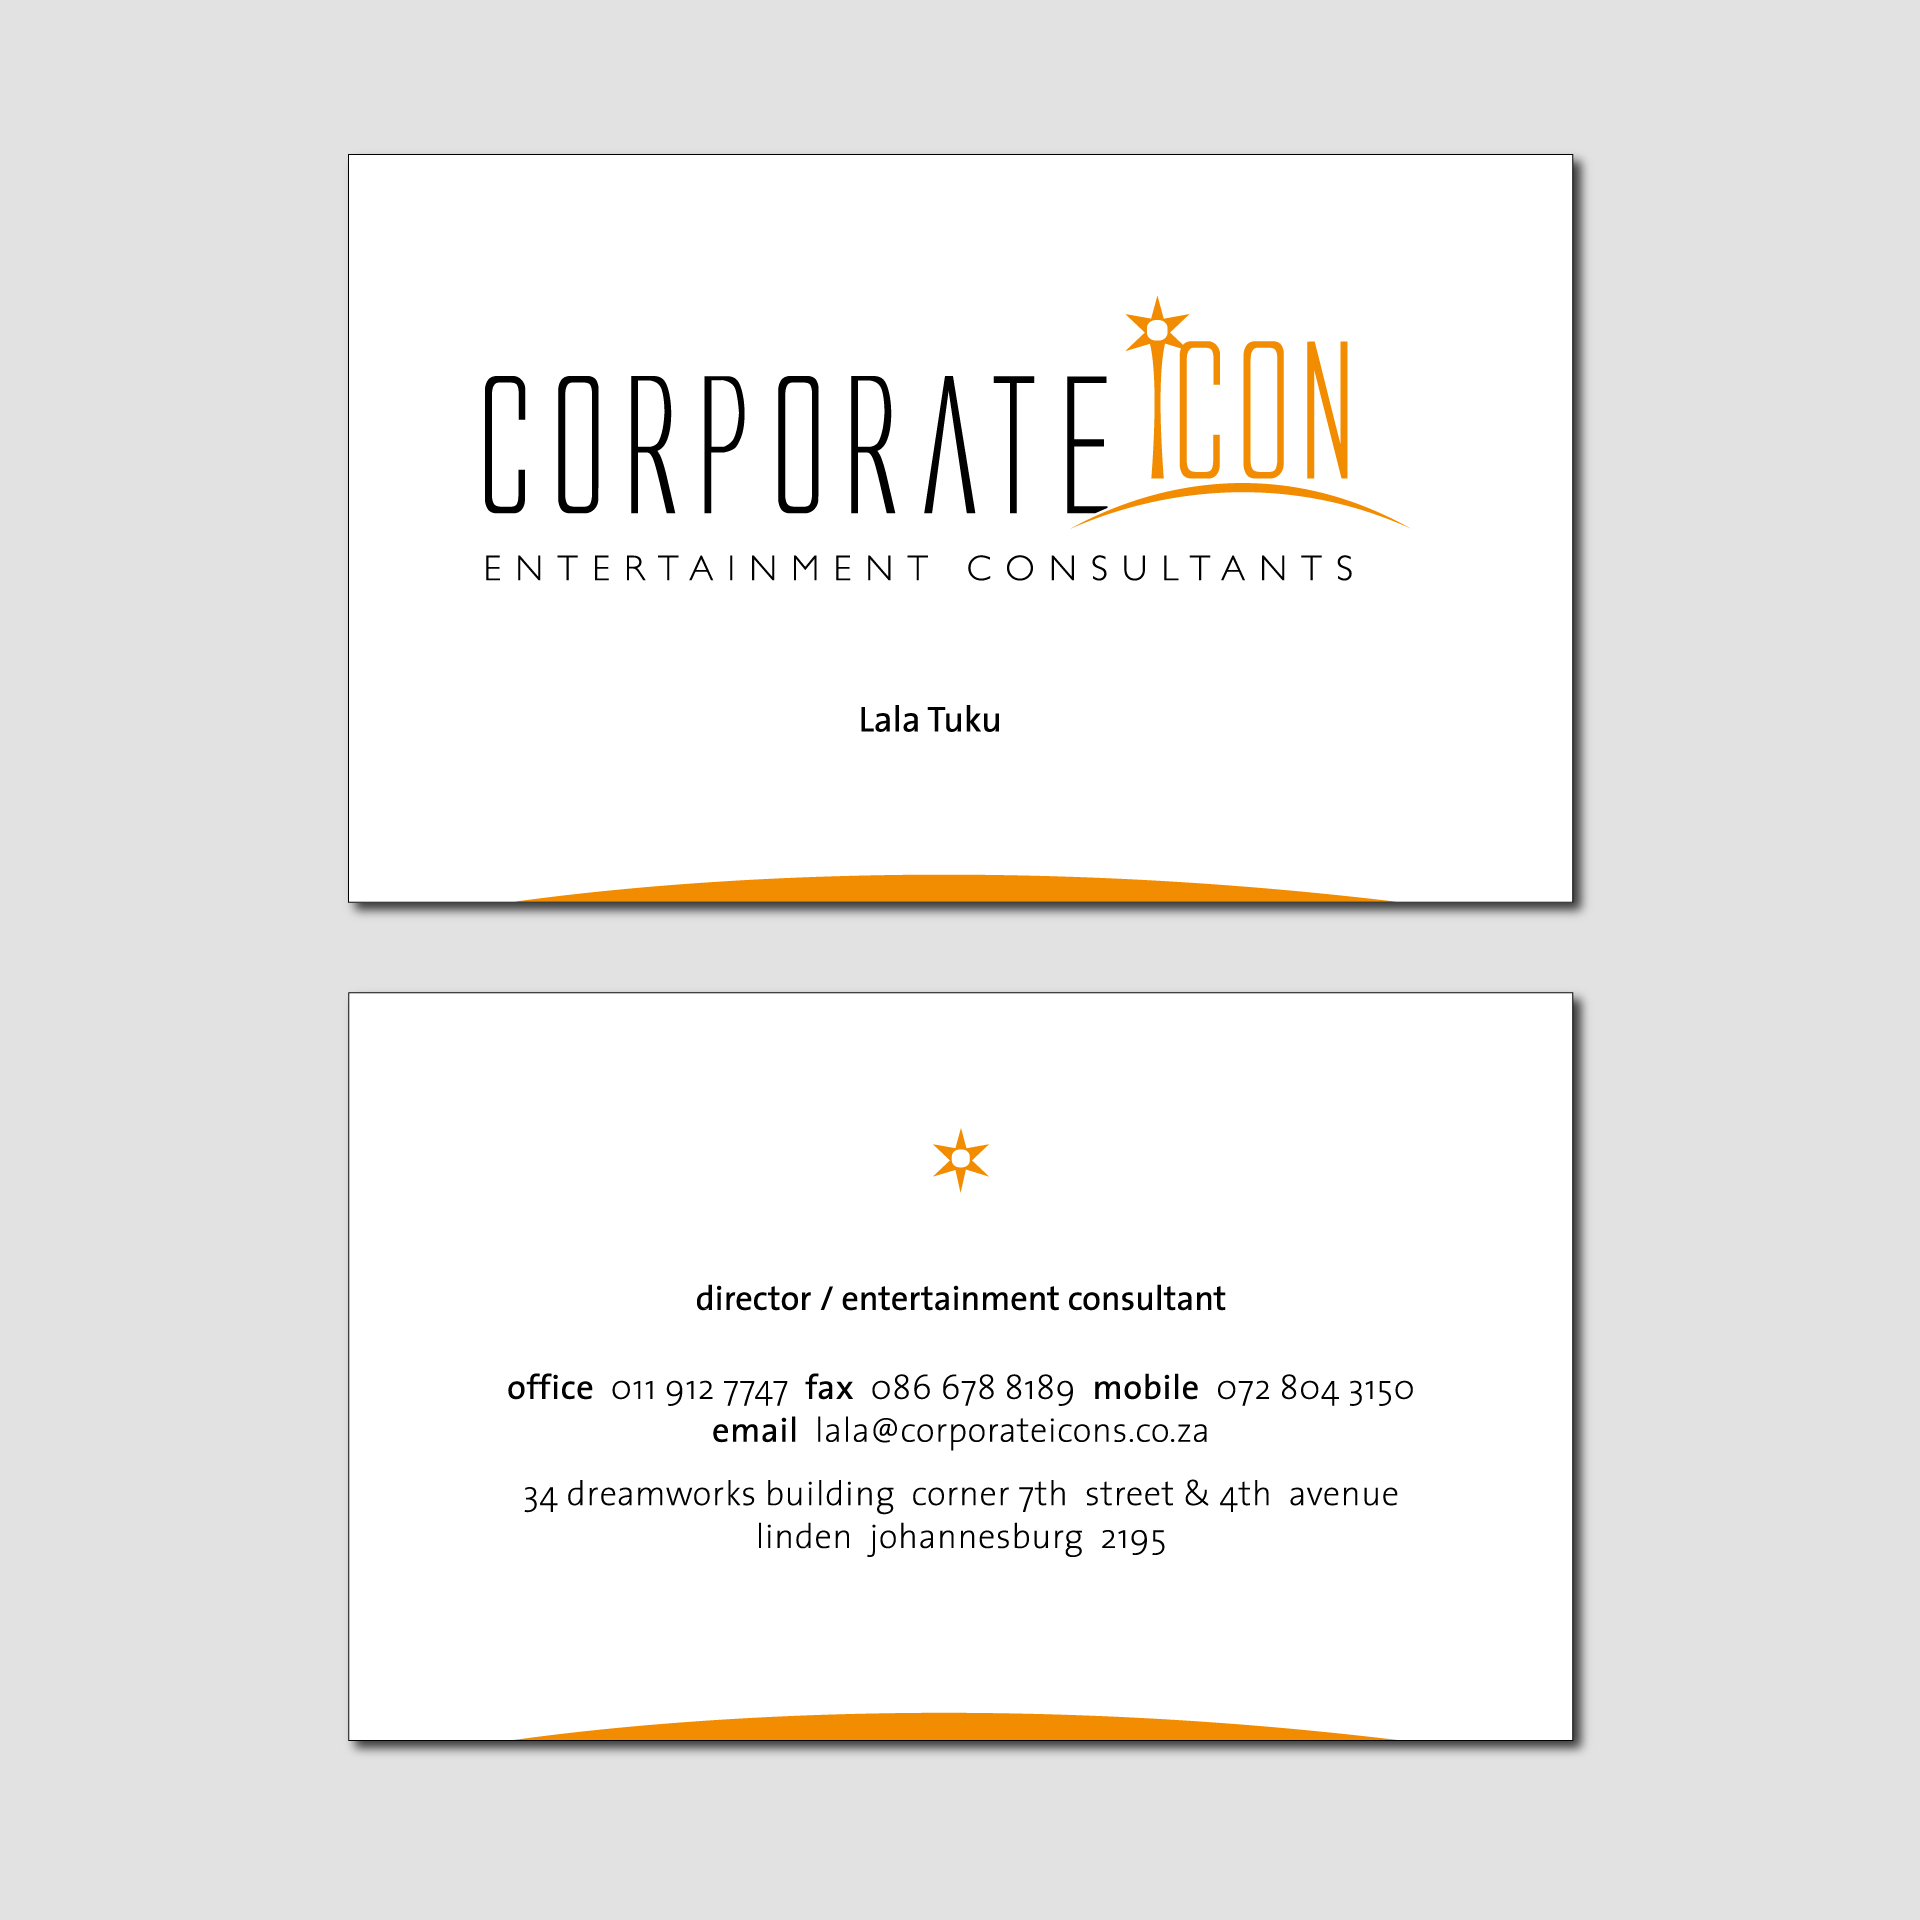 Corporate Icon Entertainment Consultants Business Card